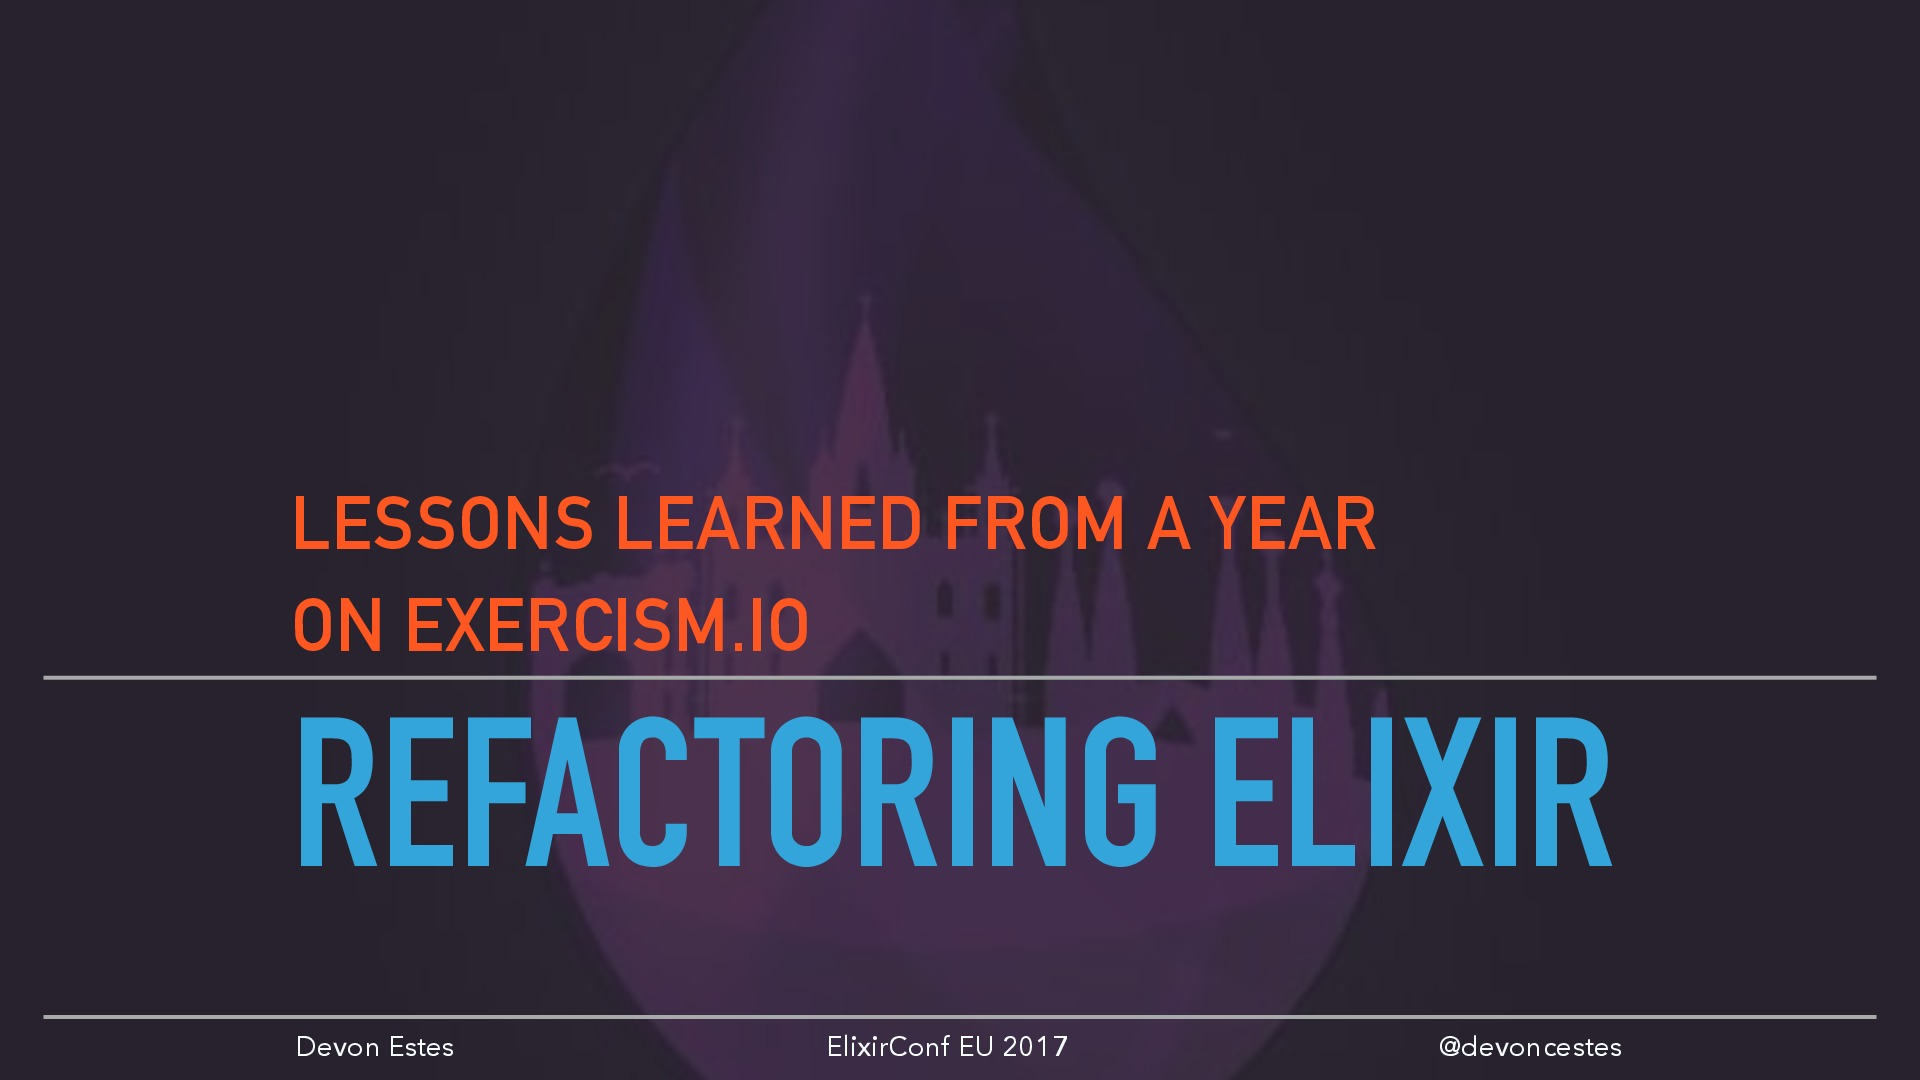 Refactoring Elixir - Lessons Learned from a Year on exercism.io